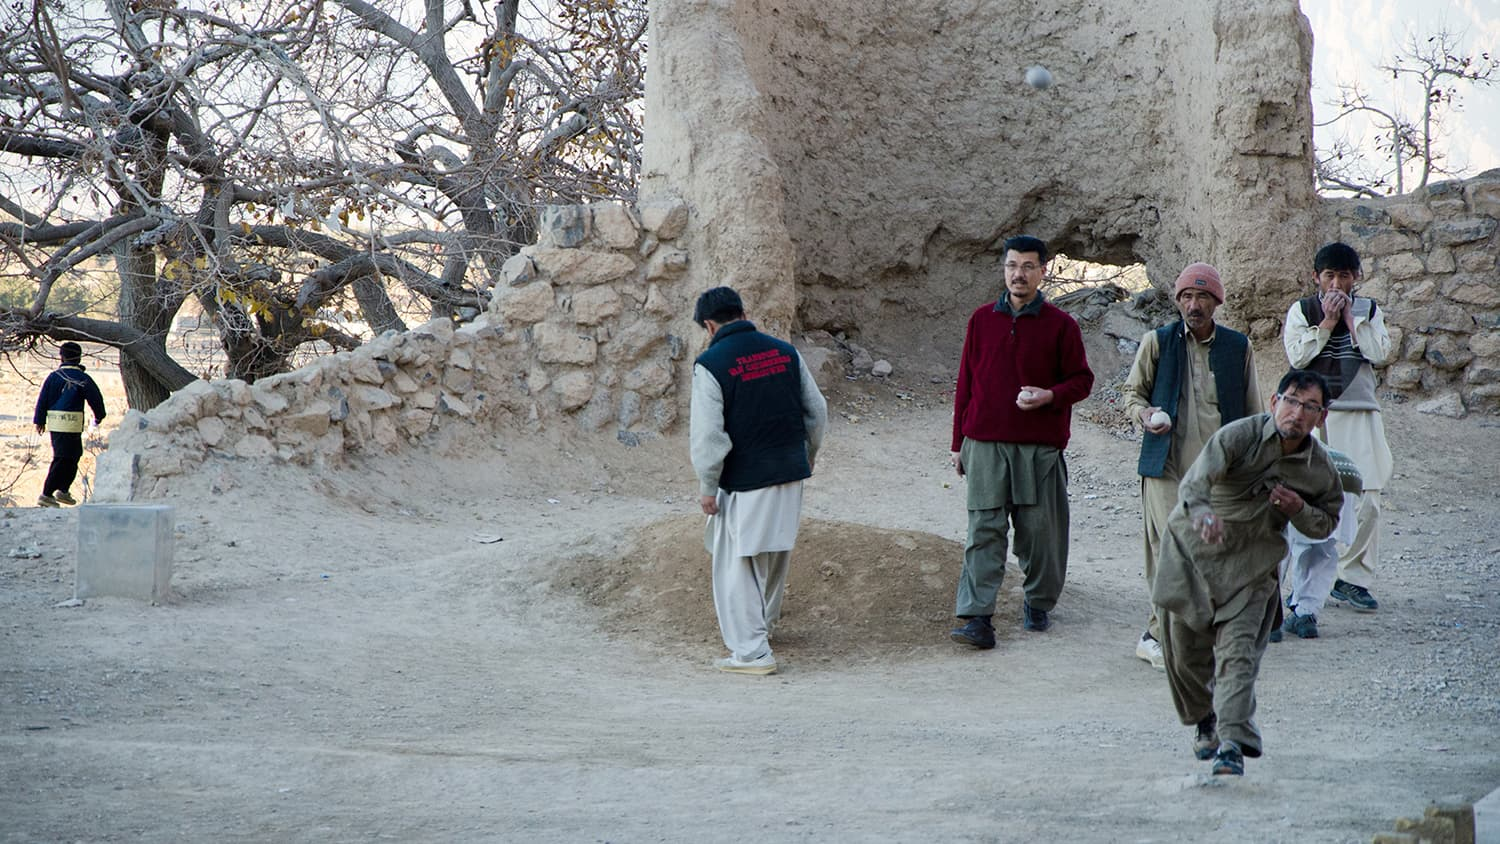 A man throwing a stone at the qarqa in the game known as Sang Girag. People of all ages gather to watch the game of Sang Girag.